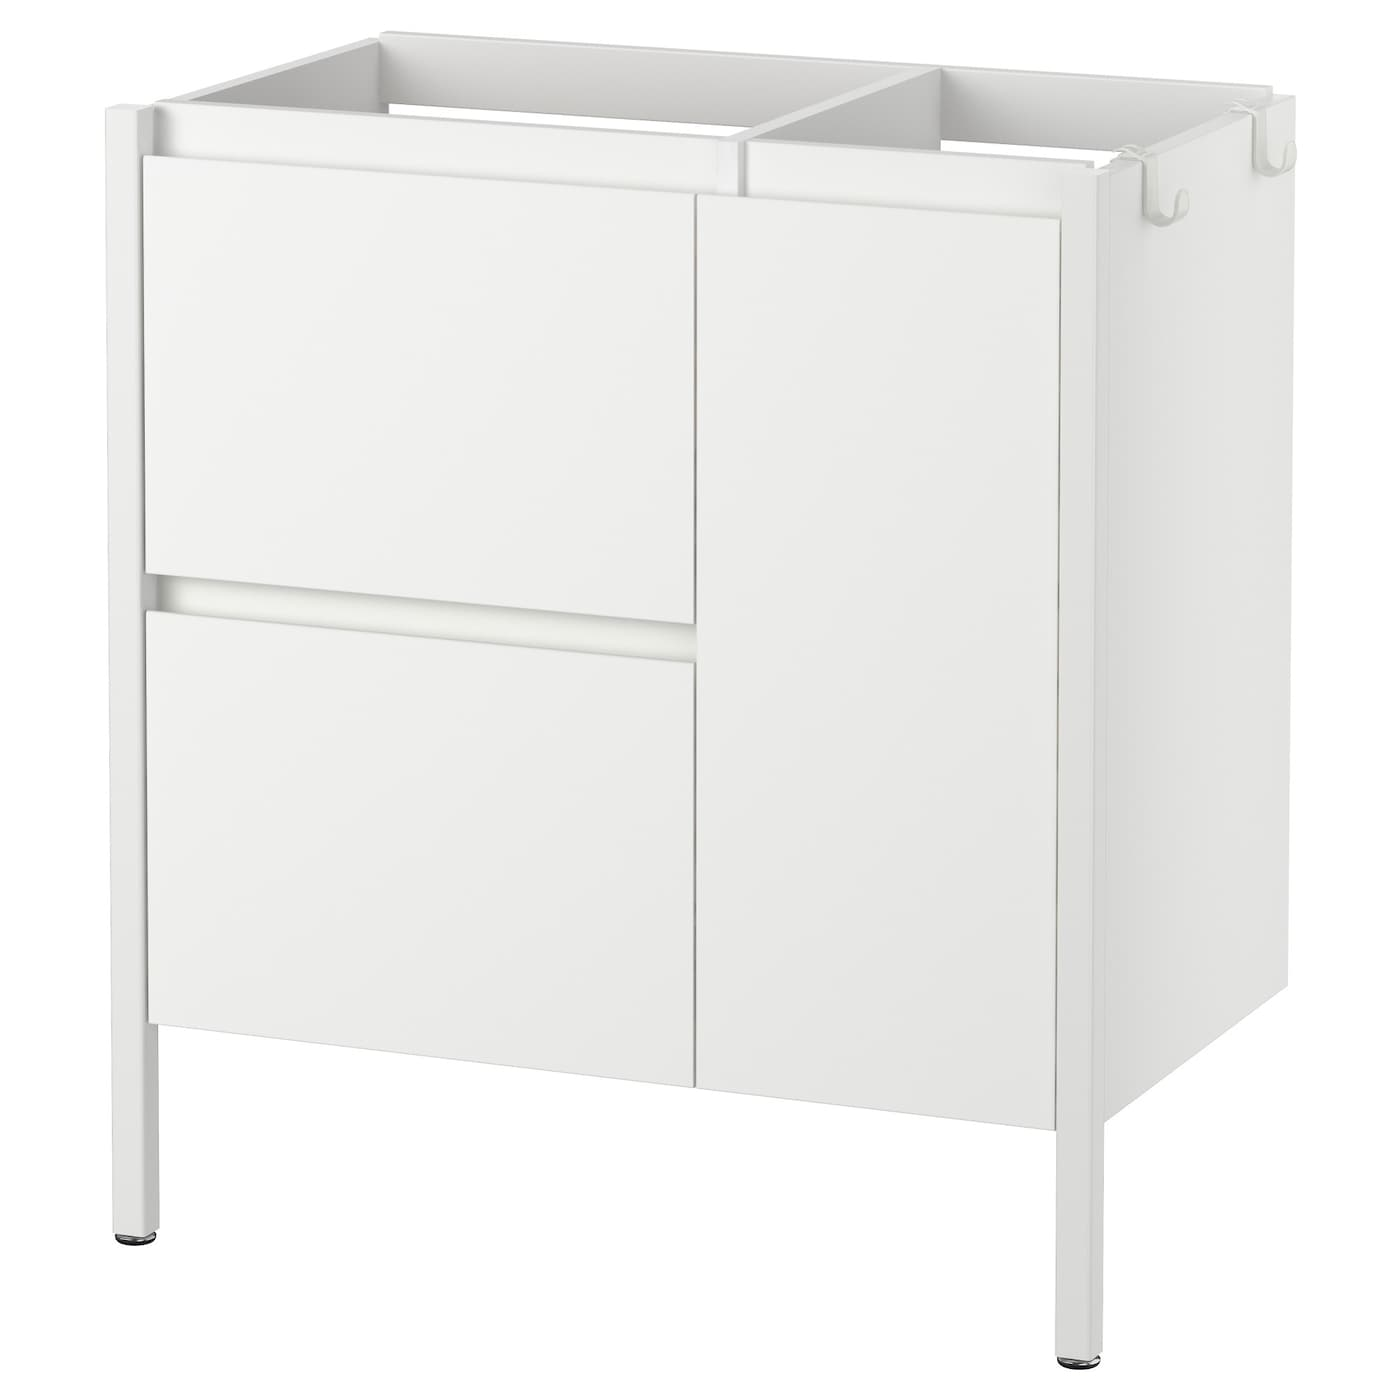 yddingen l ment lavabo blanc 70x76 cm ikea. Black Bedroom Furniture Sets. Home Design Ideas